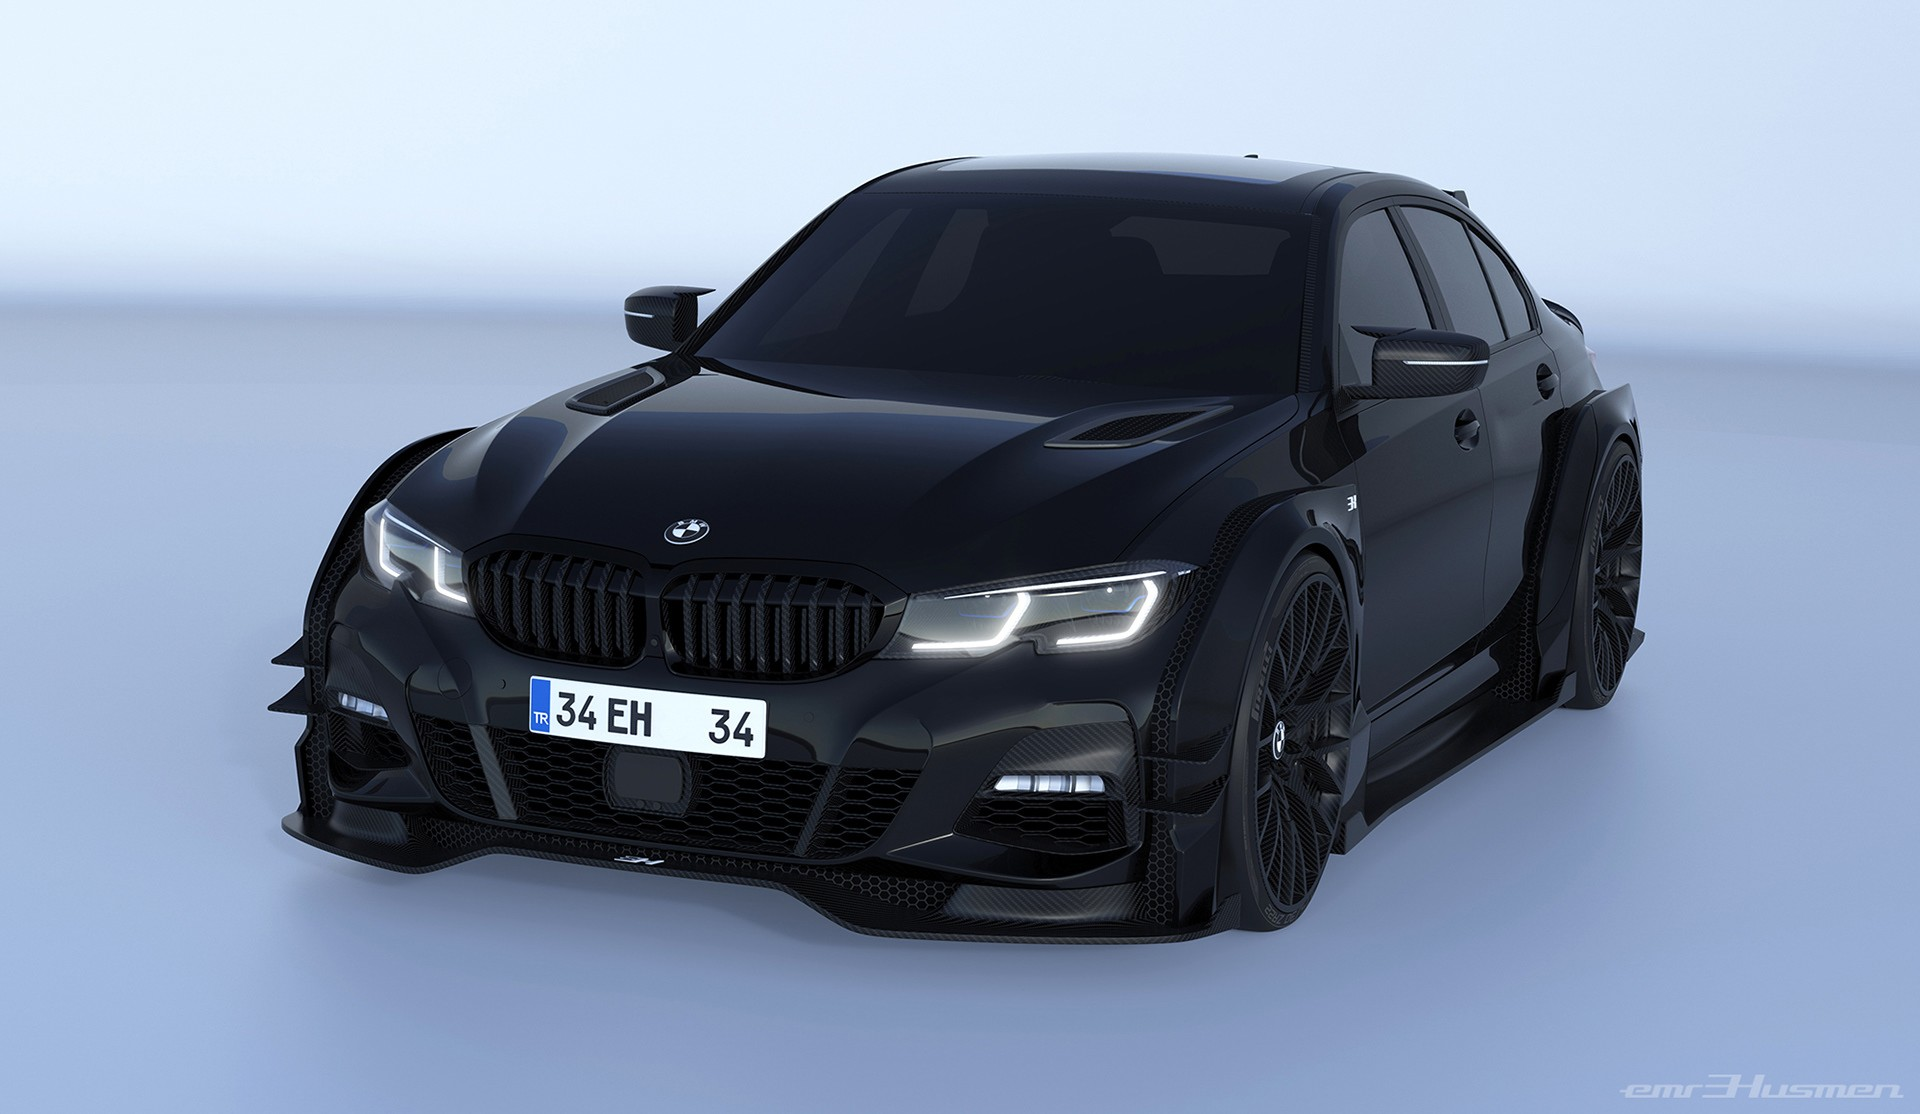 2020 Bmw 3 Series Rendered With Race Car Concept Kit Autoevolution